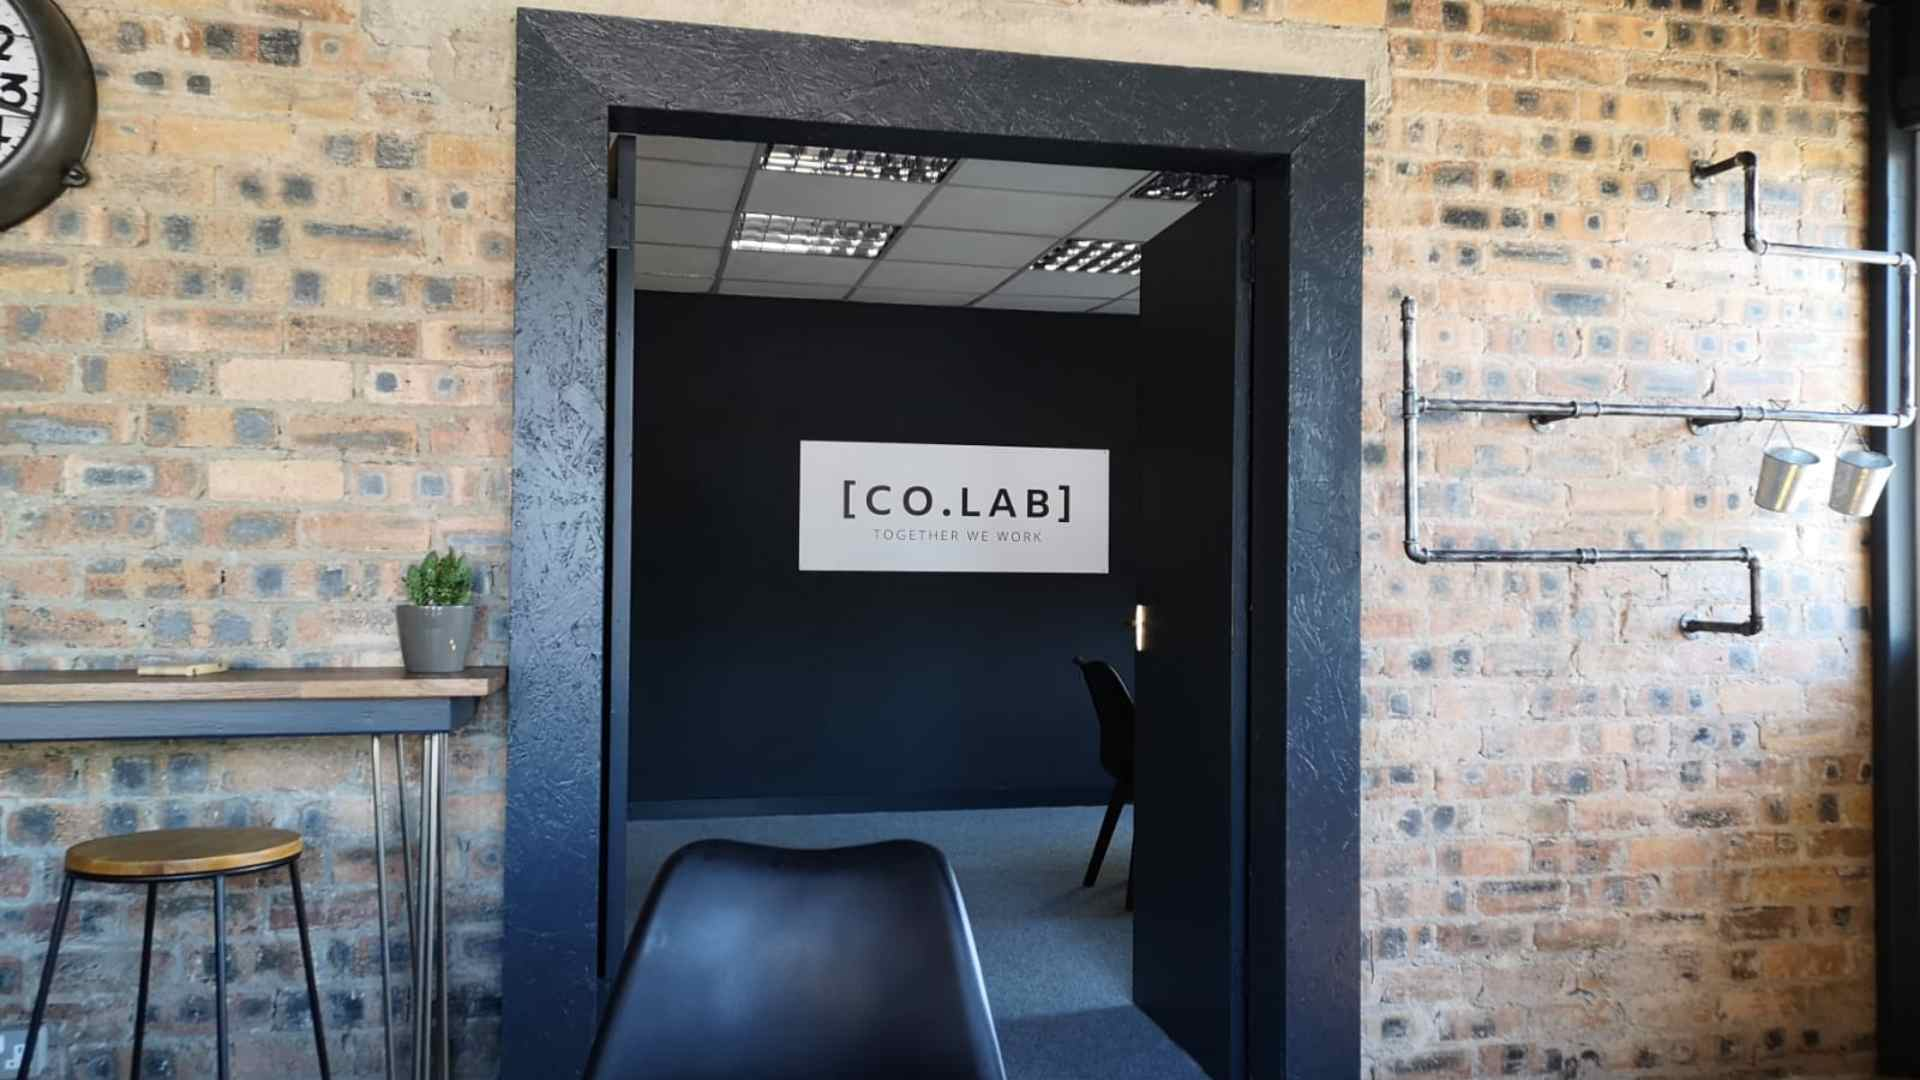 Image showing the meeting room in Co.Lab where space hire is available